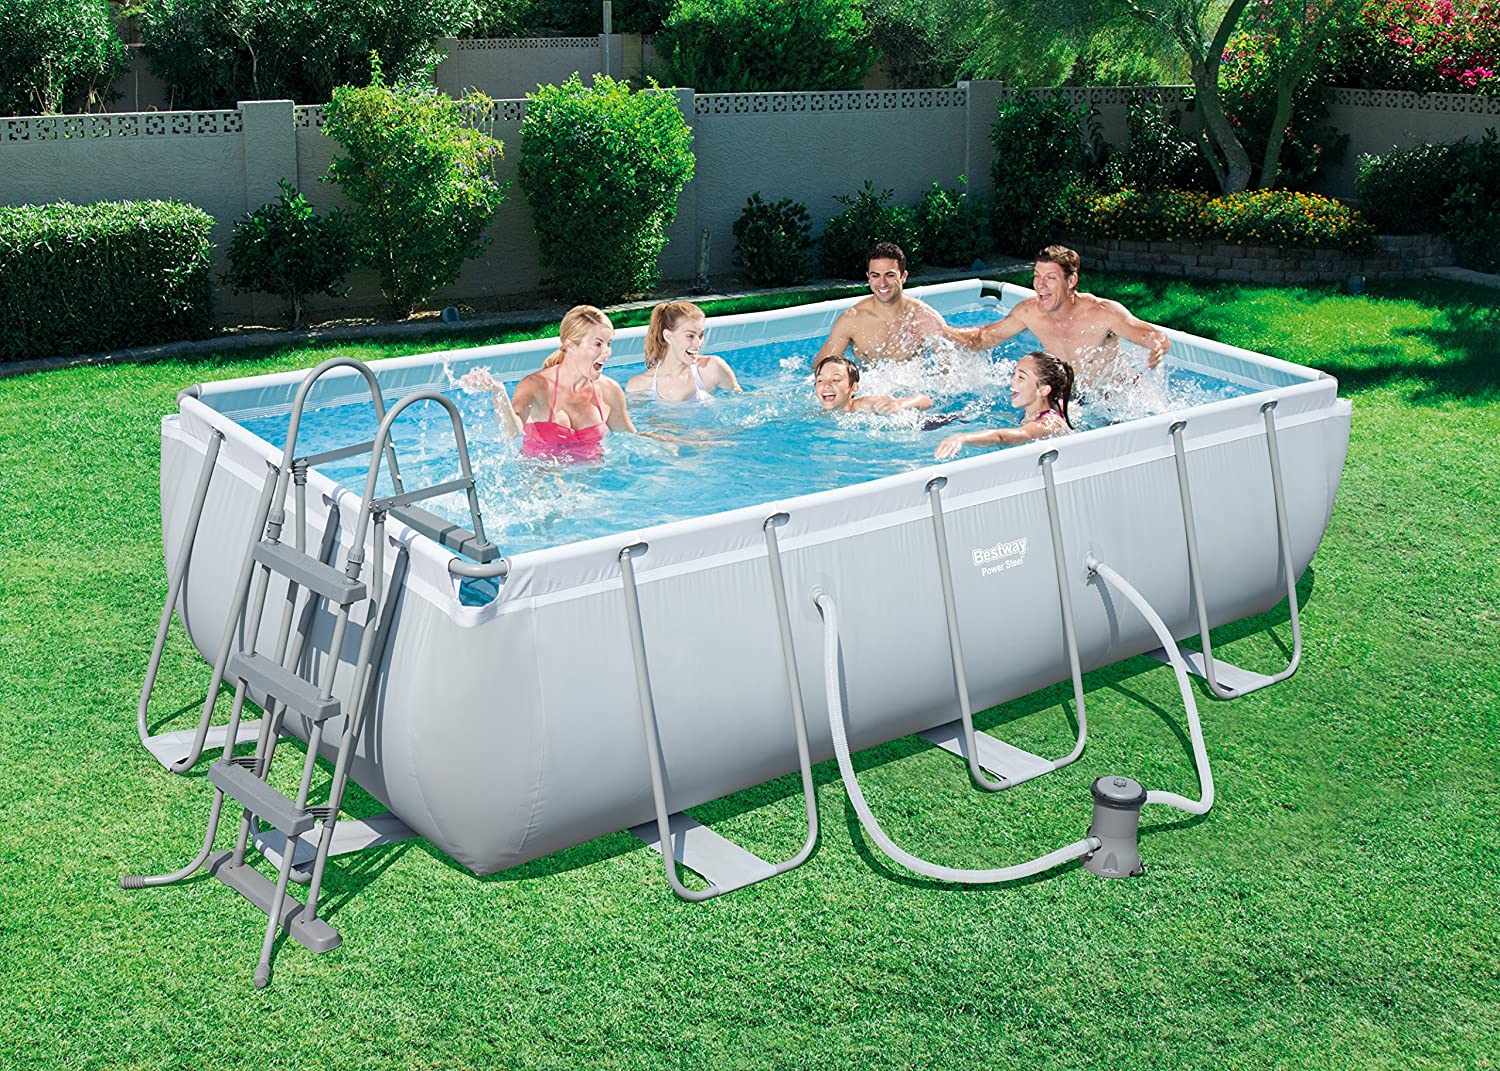 Bestway 56441 Juego de Piscina Rectangular Power Steel Azul 4.04m x 2.01m x 1.00m: Amazon.es: Jardín